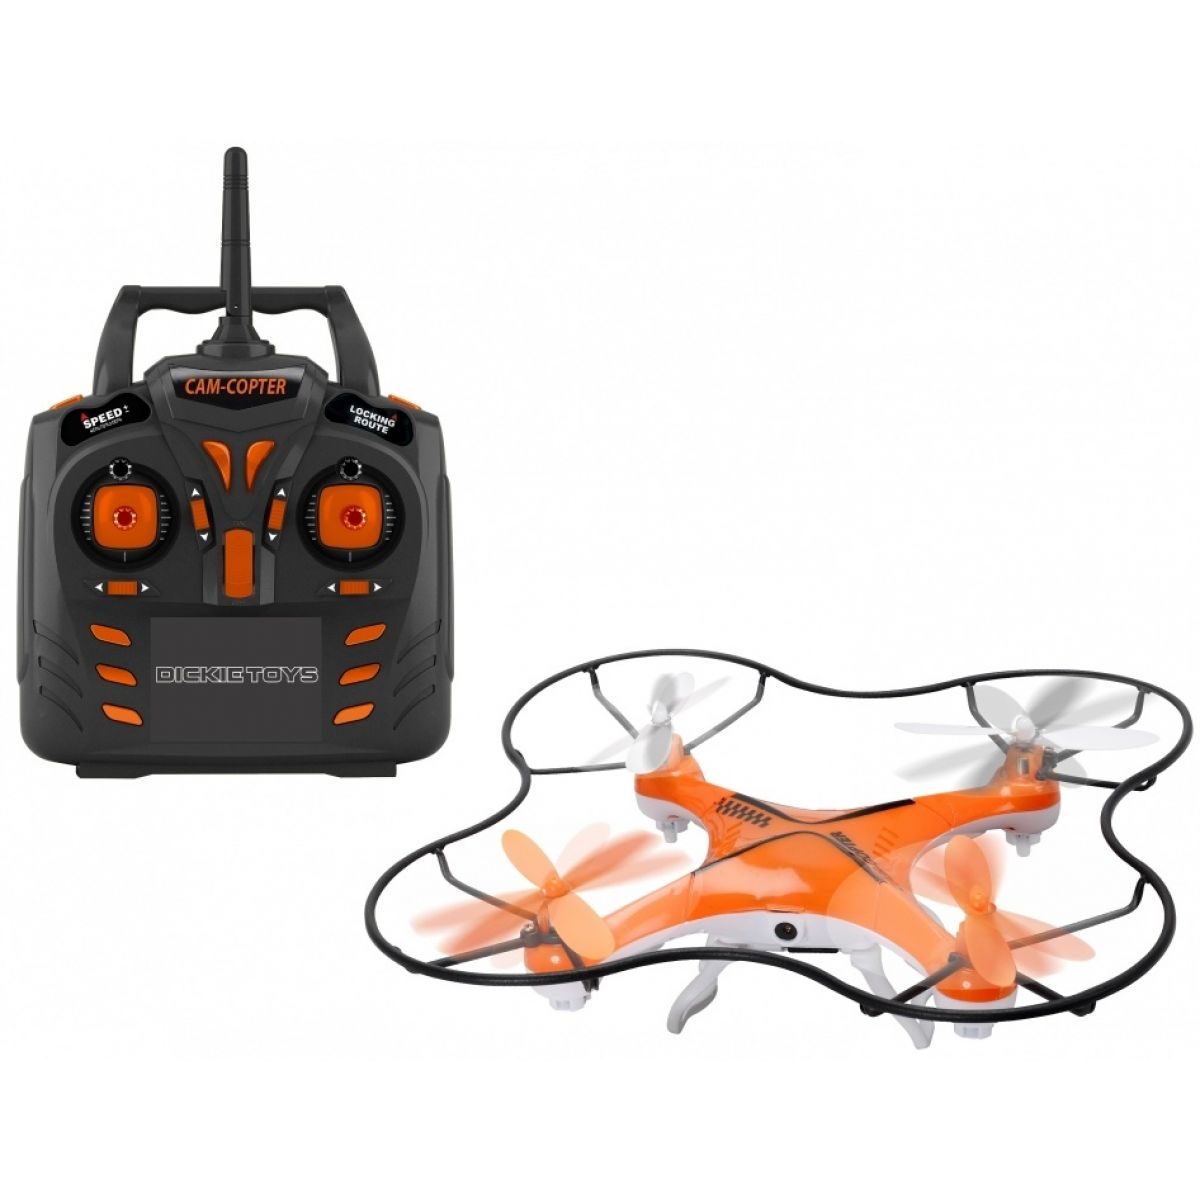 Dickie RC Helikoptéra Cam Copter